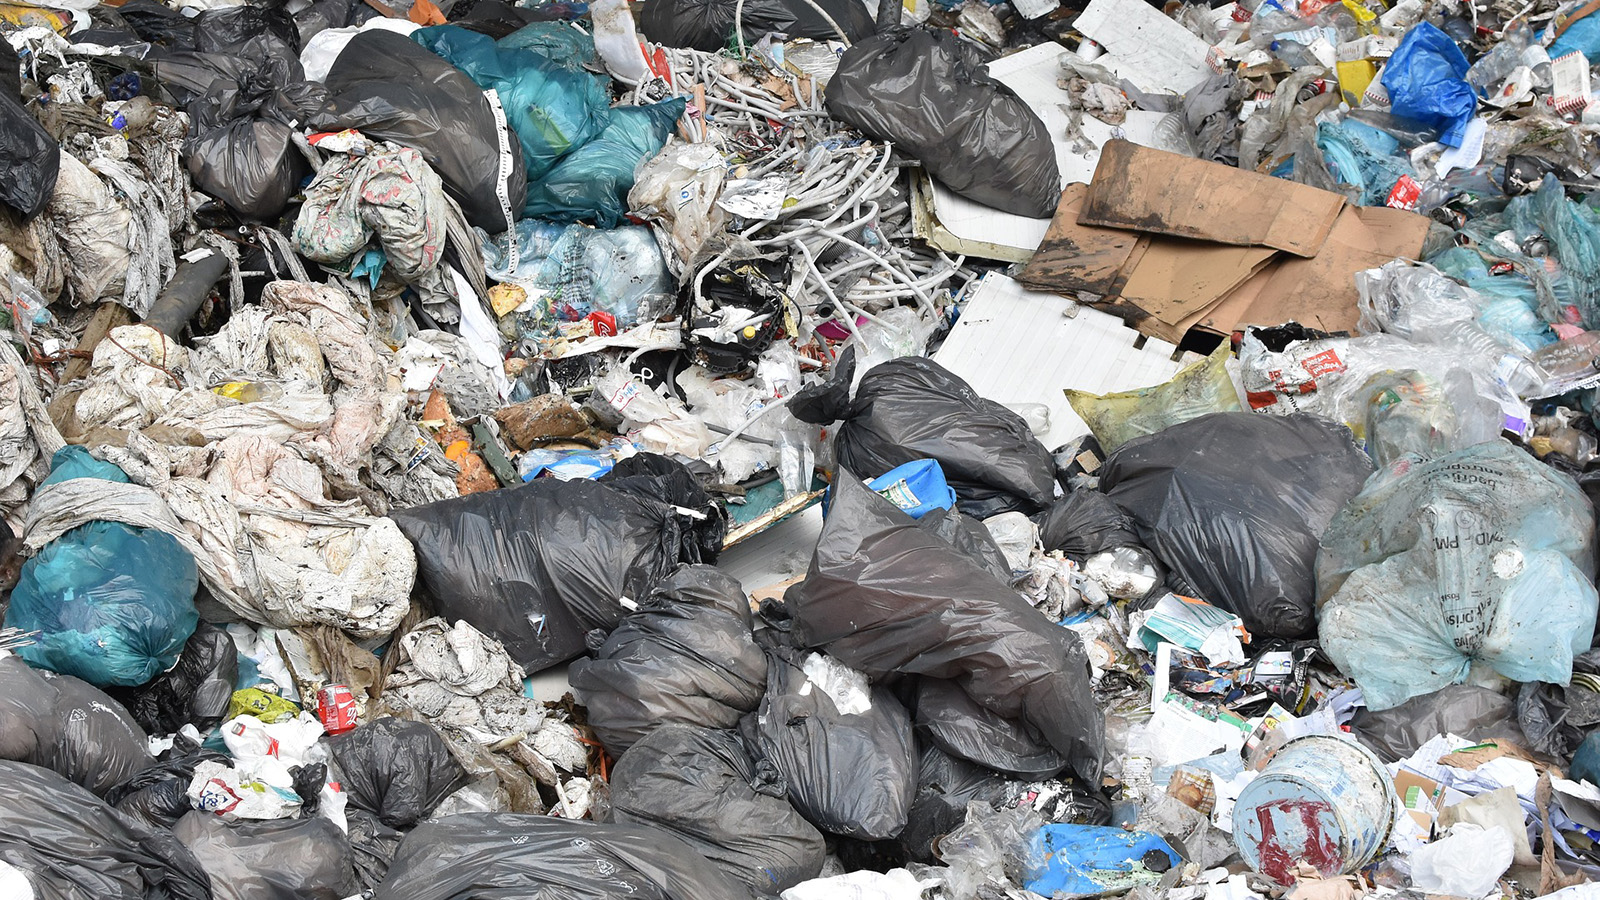 <h4>TRASHING OUR STATE</h4><h5>Pennsylvania is the #1 importer of trash from other states in the nation, adding to our landfill problems.</h5><em>Ben Kerckx from Pixabay</em>